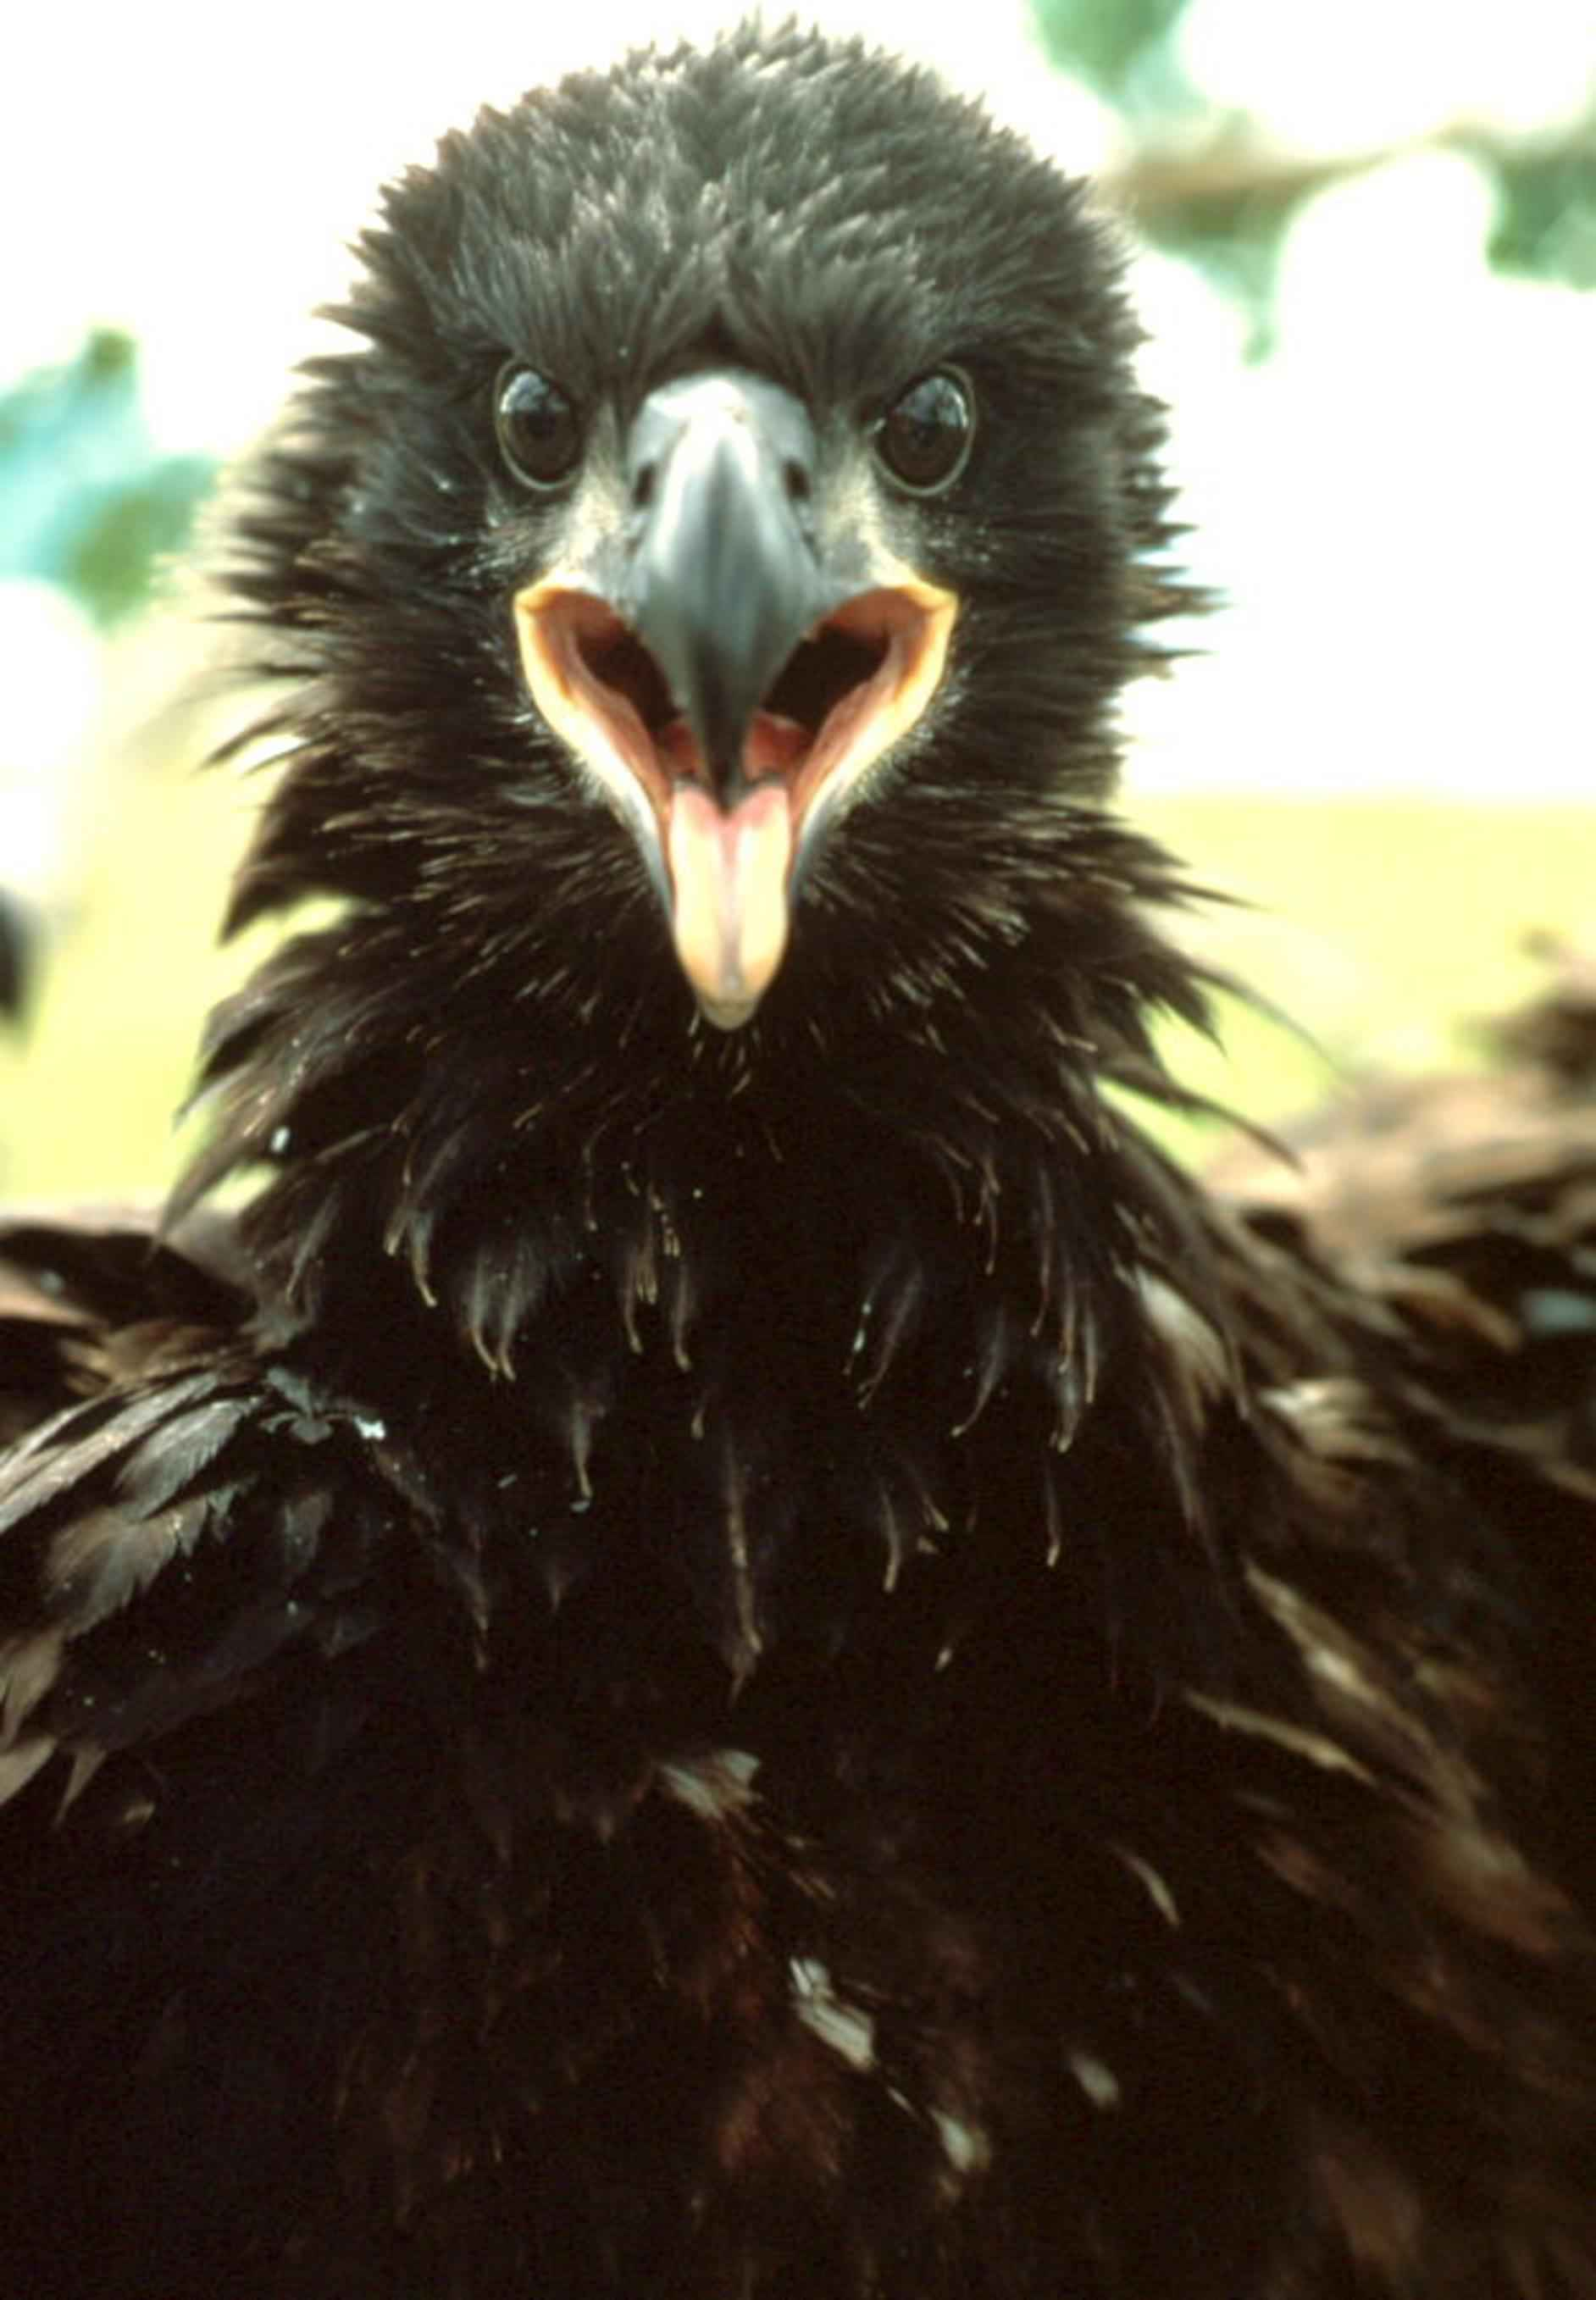 This Bald Eagle fledgling is pretty excited too.